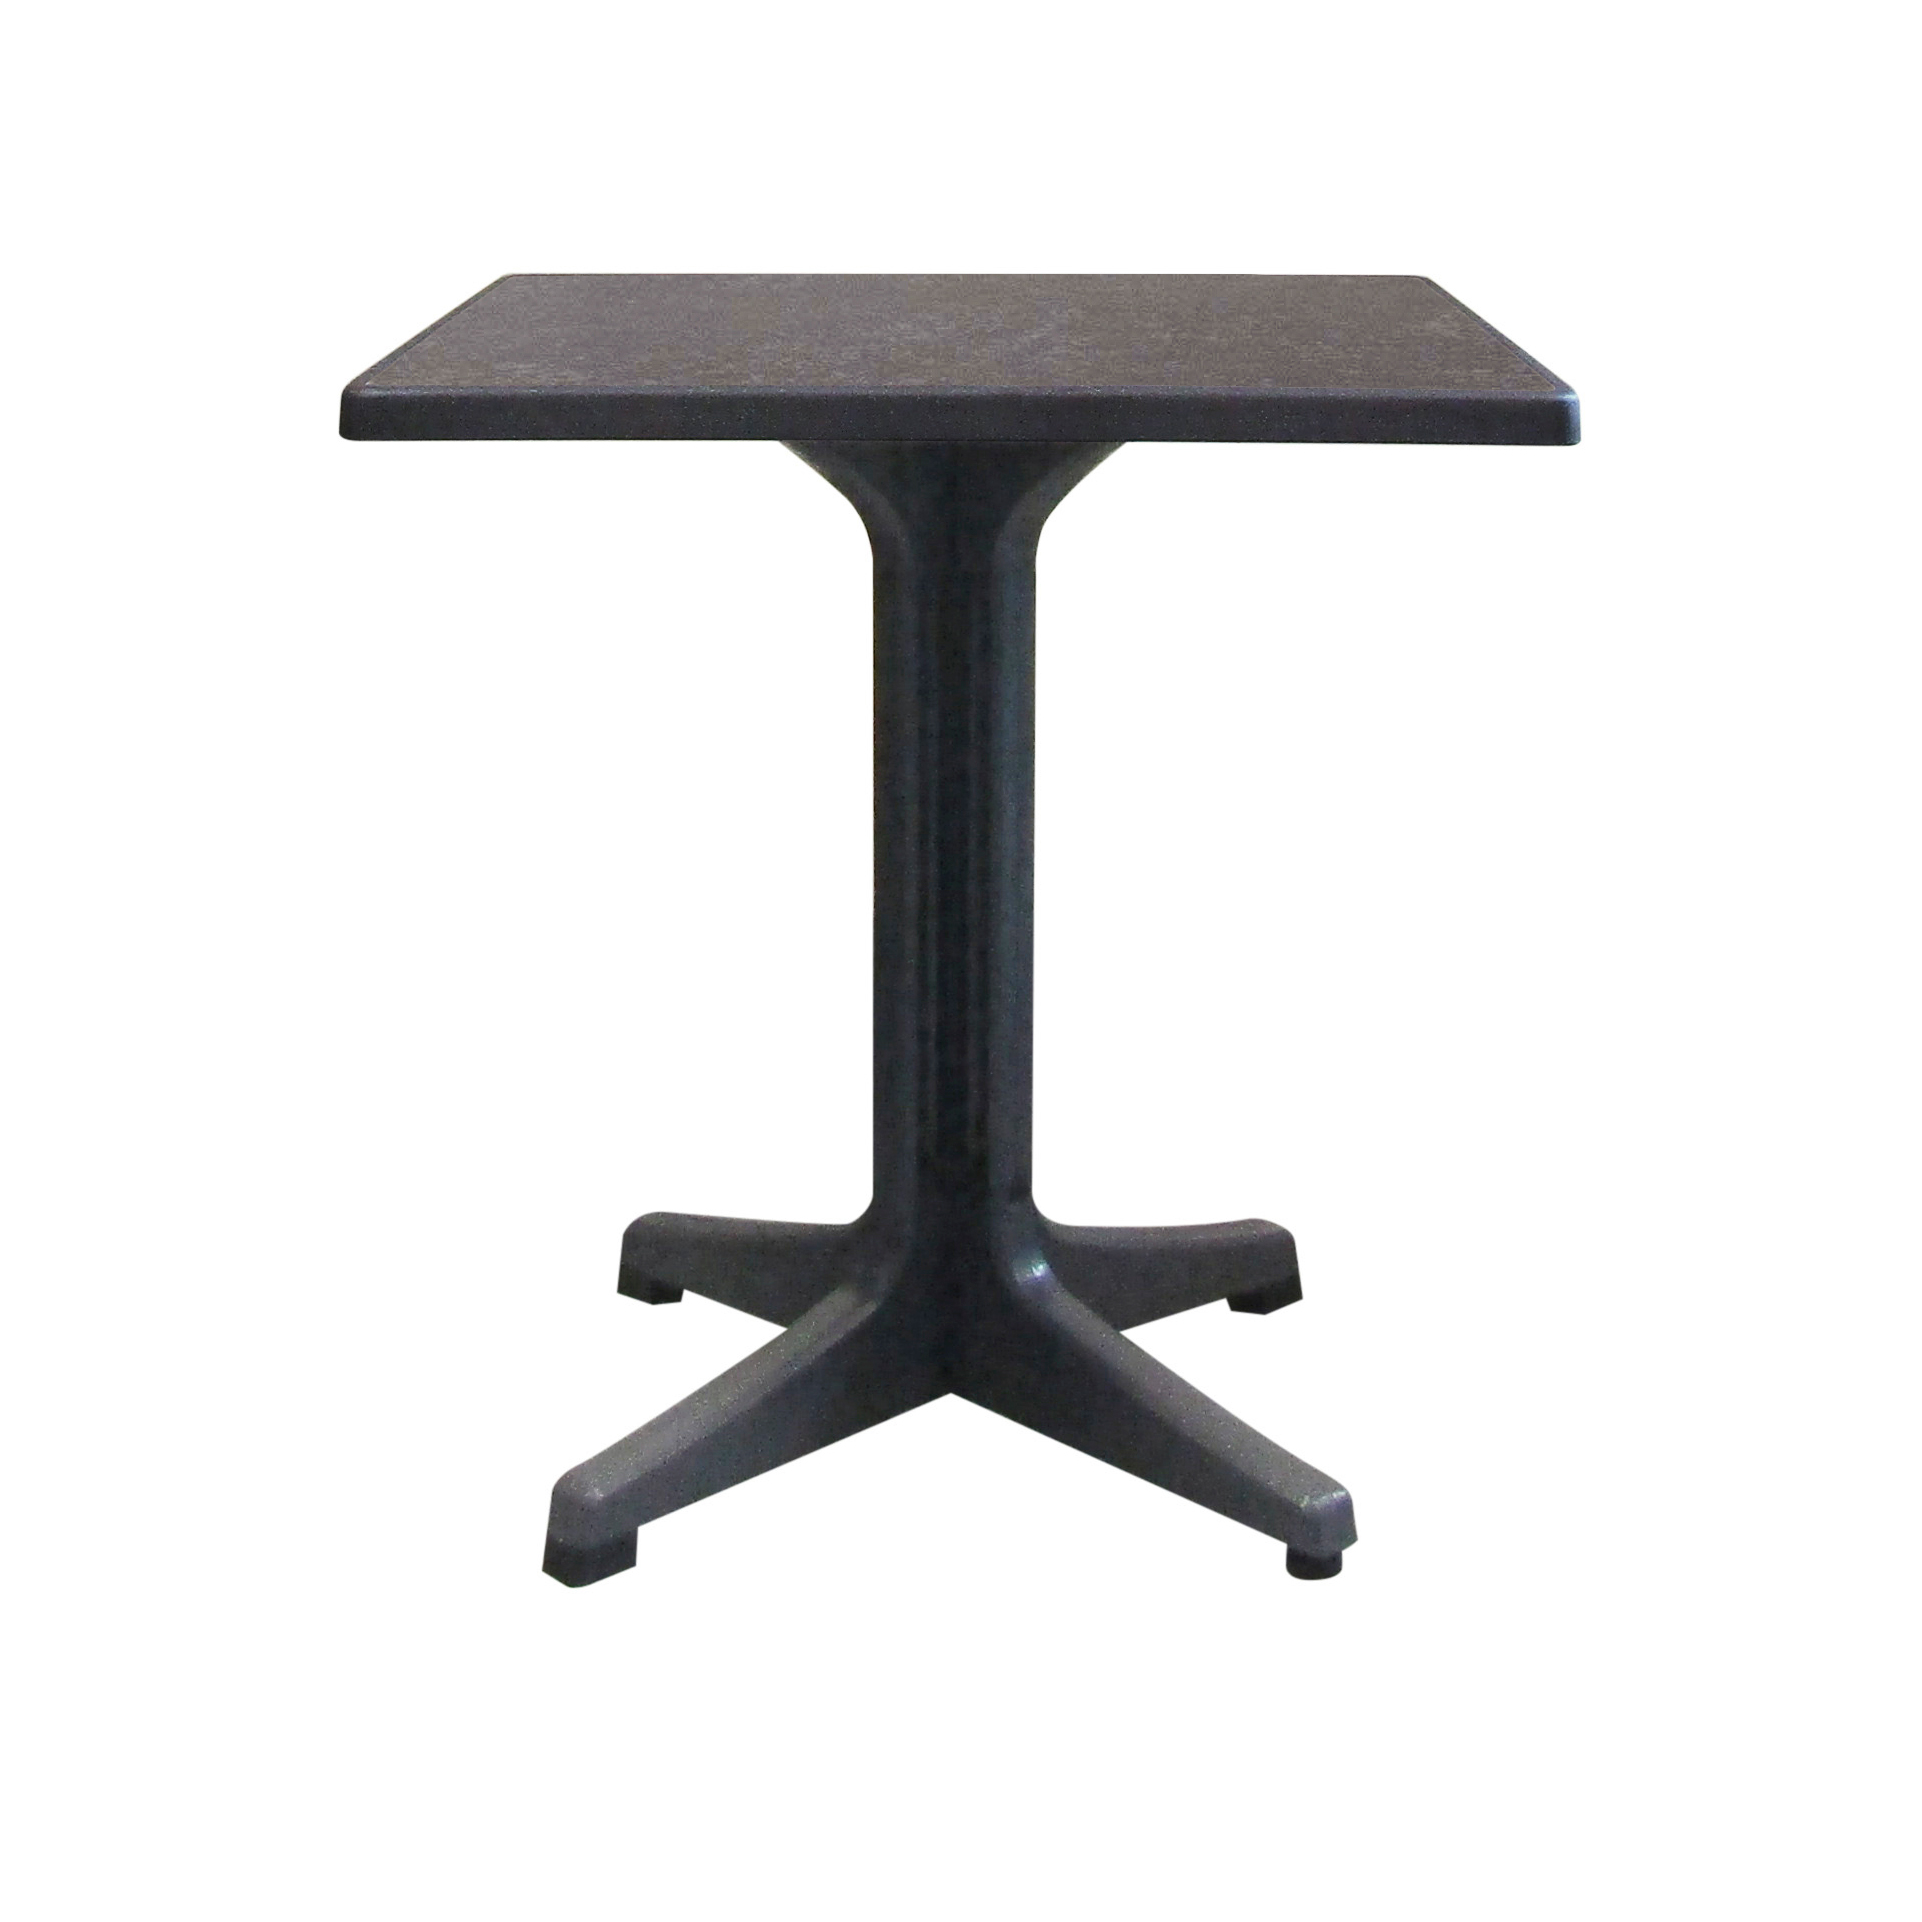 Grosfillex US285744 table, outdoor